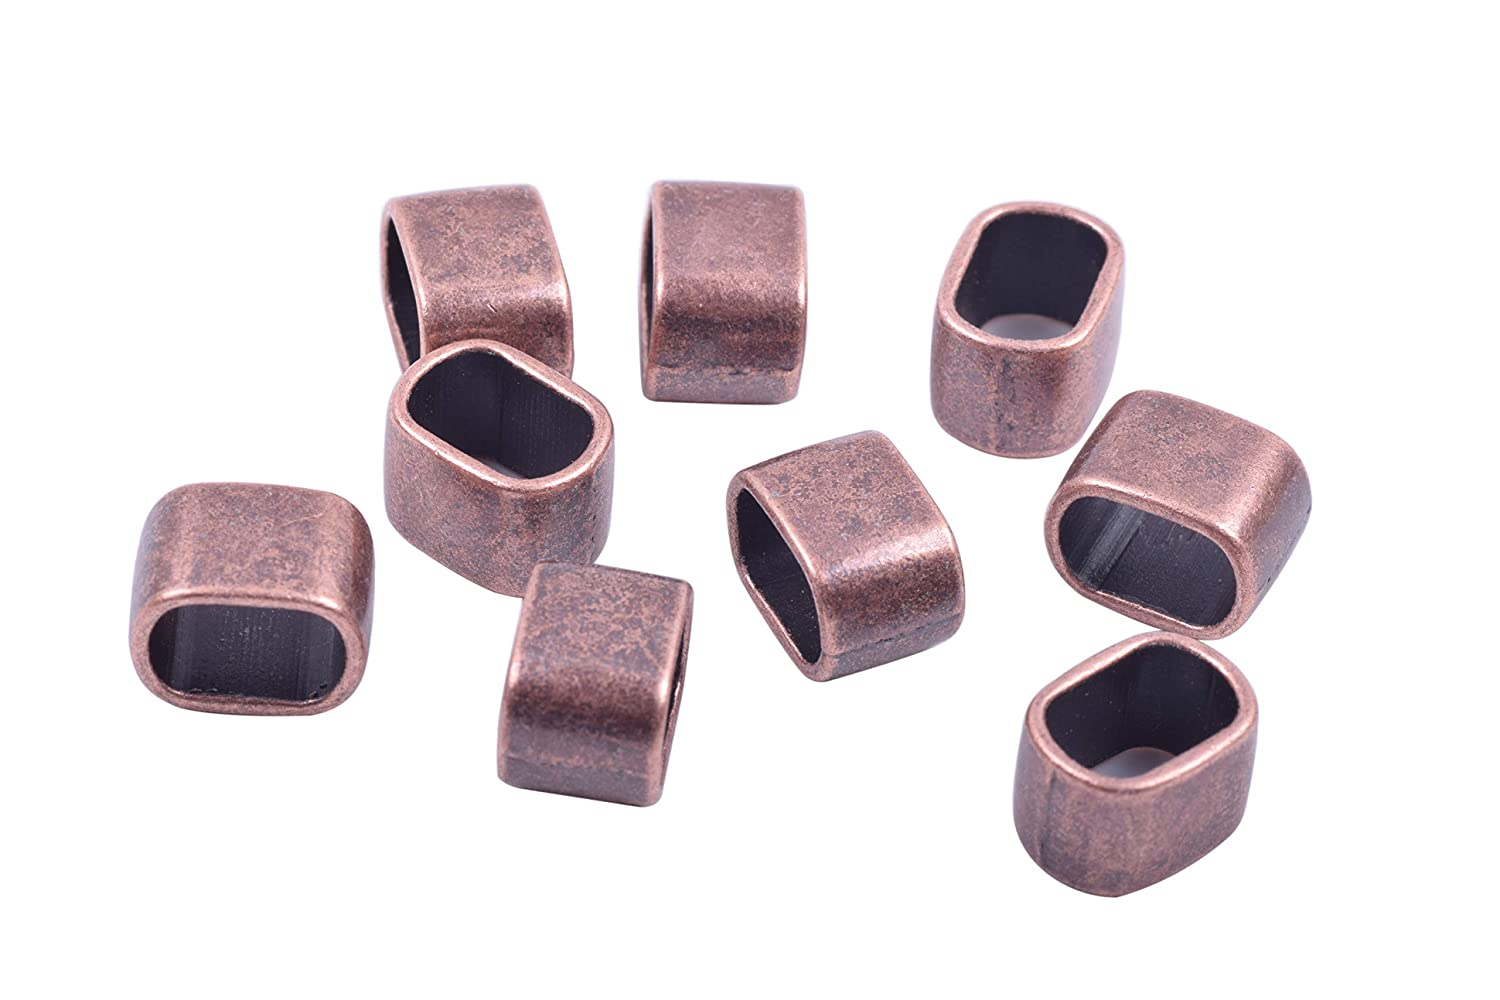 KONMAY 30pcs 10.3x7.0mm Slider Spacer Charms Beads for Jewelry Making Antique Copper